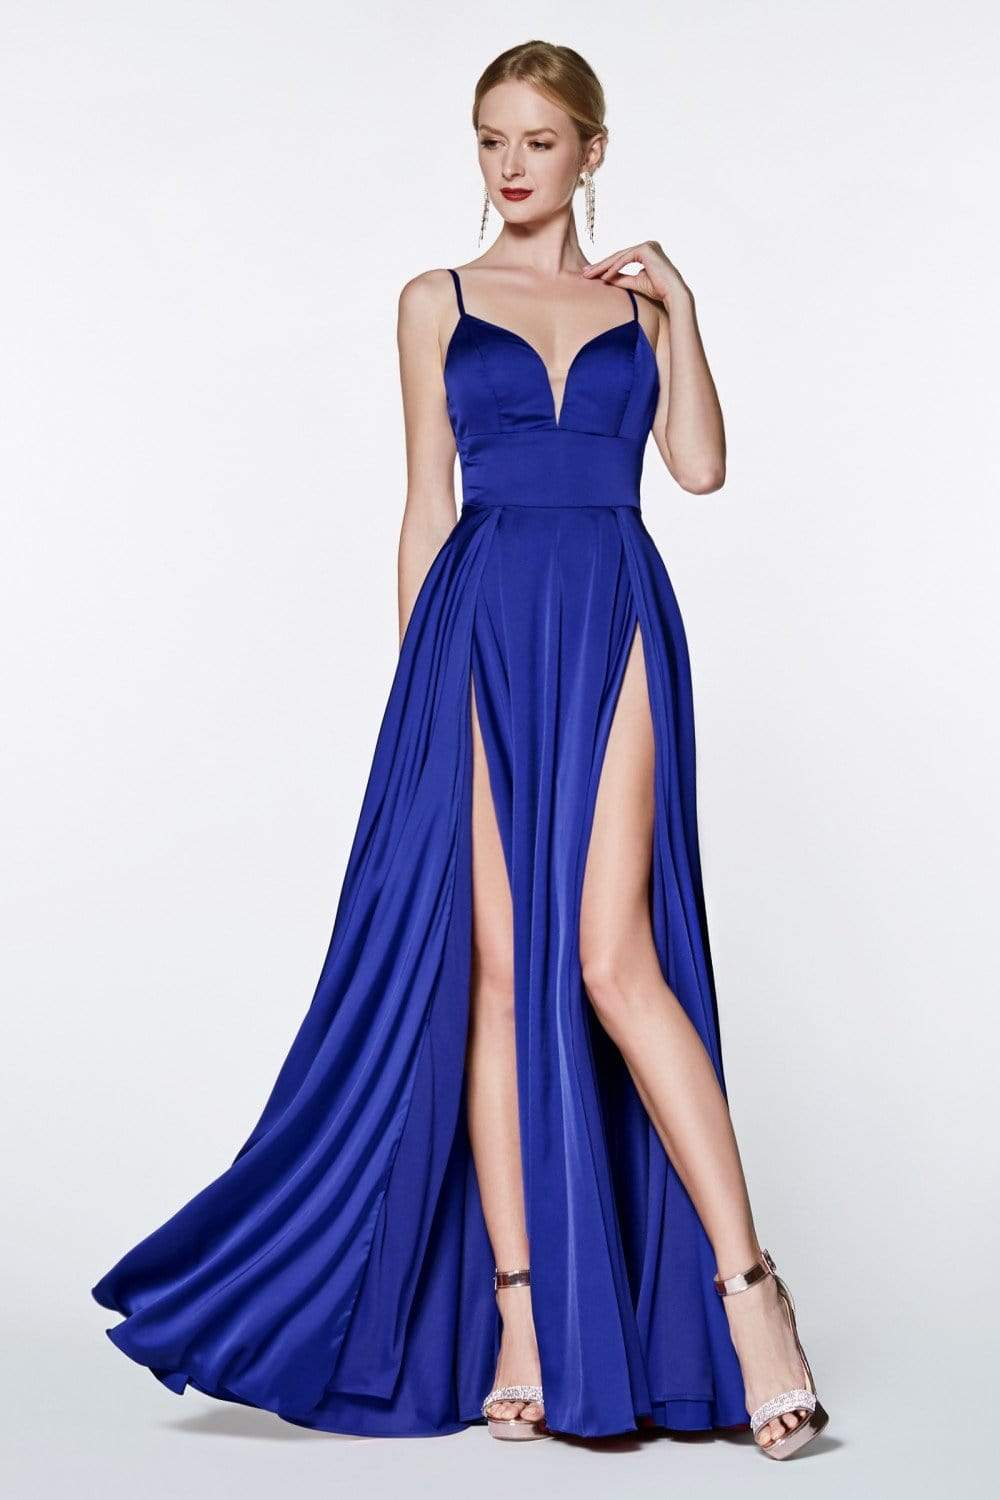 Cinderella Divine - CJ526 Sheer Plunging Neck Double Slit Satin Gown Special Occasion Dress 2 / Royal